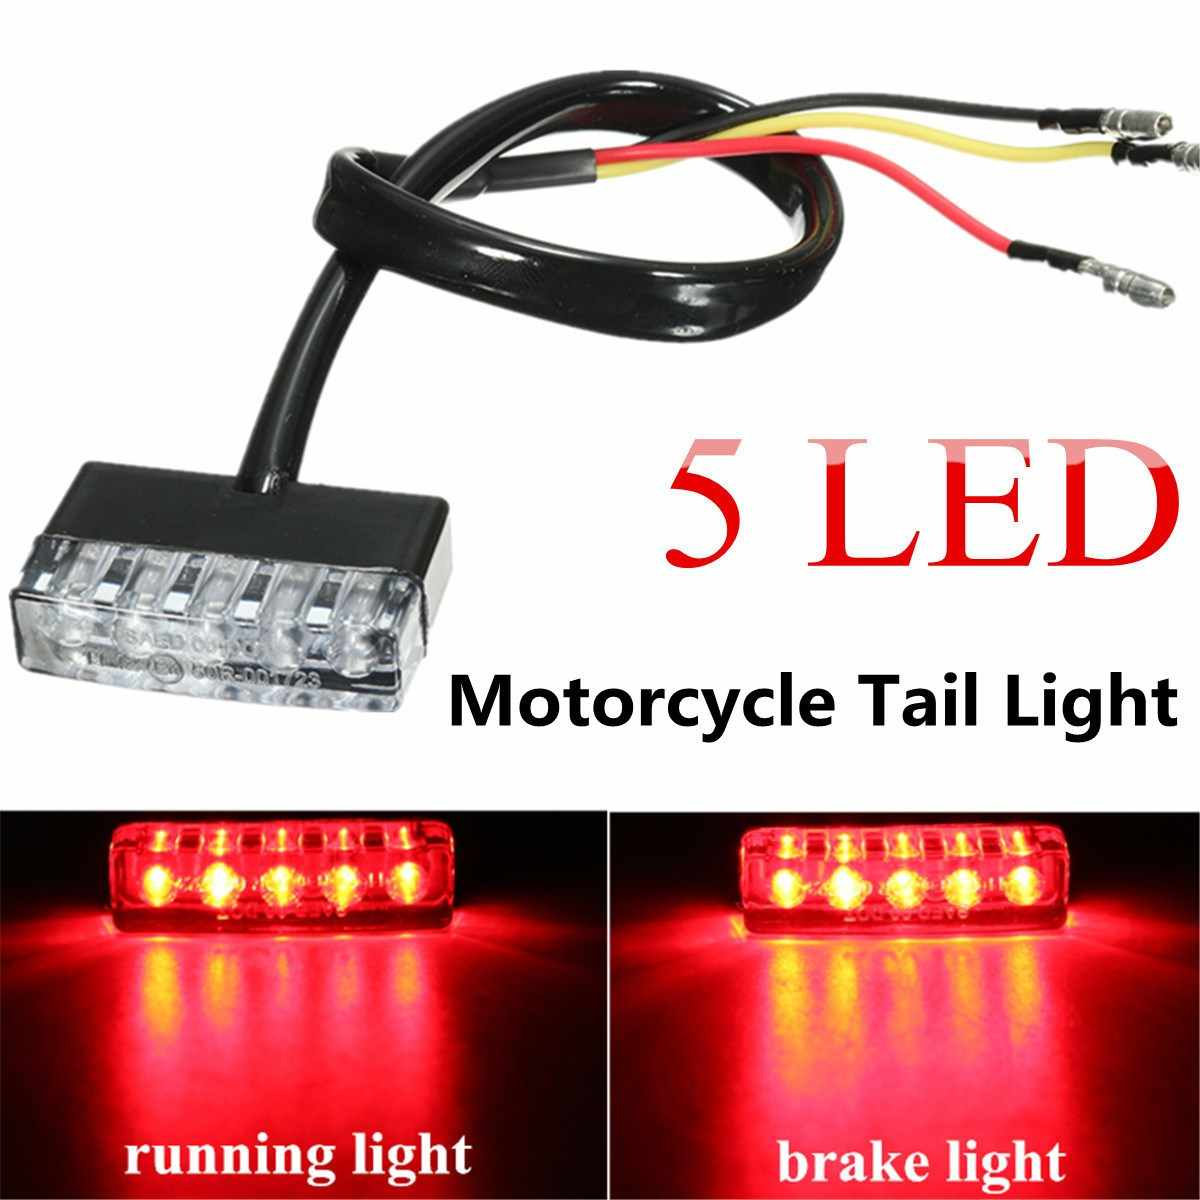 12v universal motorcycle atv bike mini 5 led rear lamp taillight running stop signal brake lights [ 1200 x 1200 Pixel ]